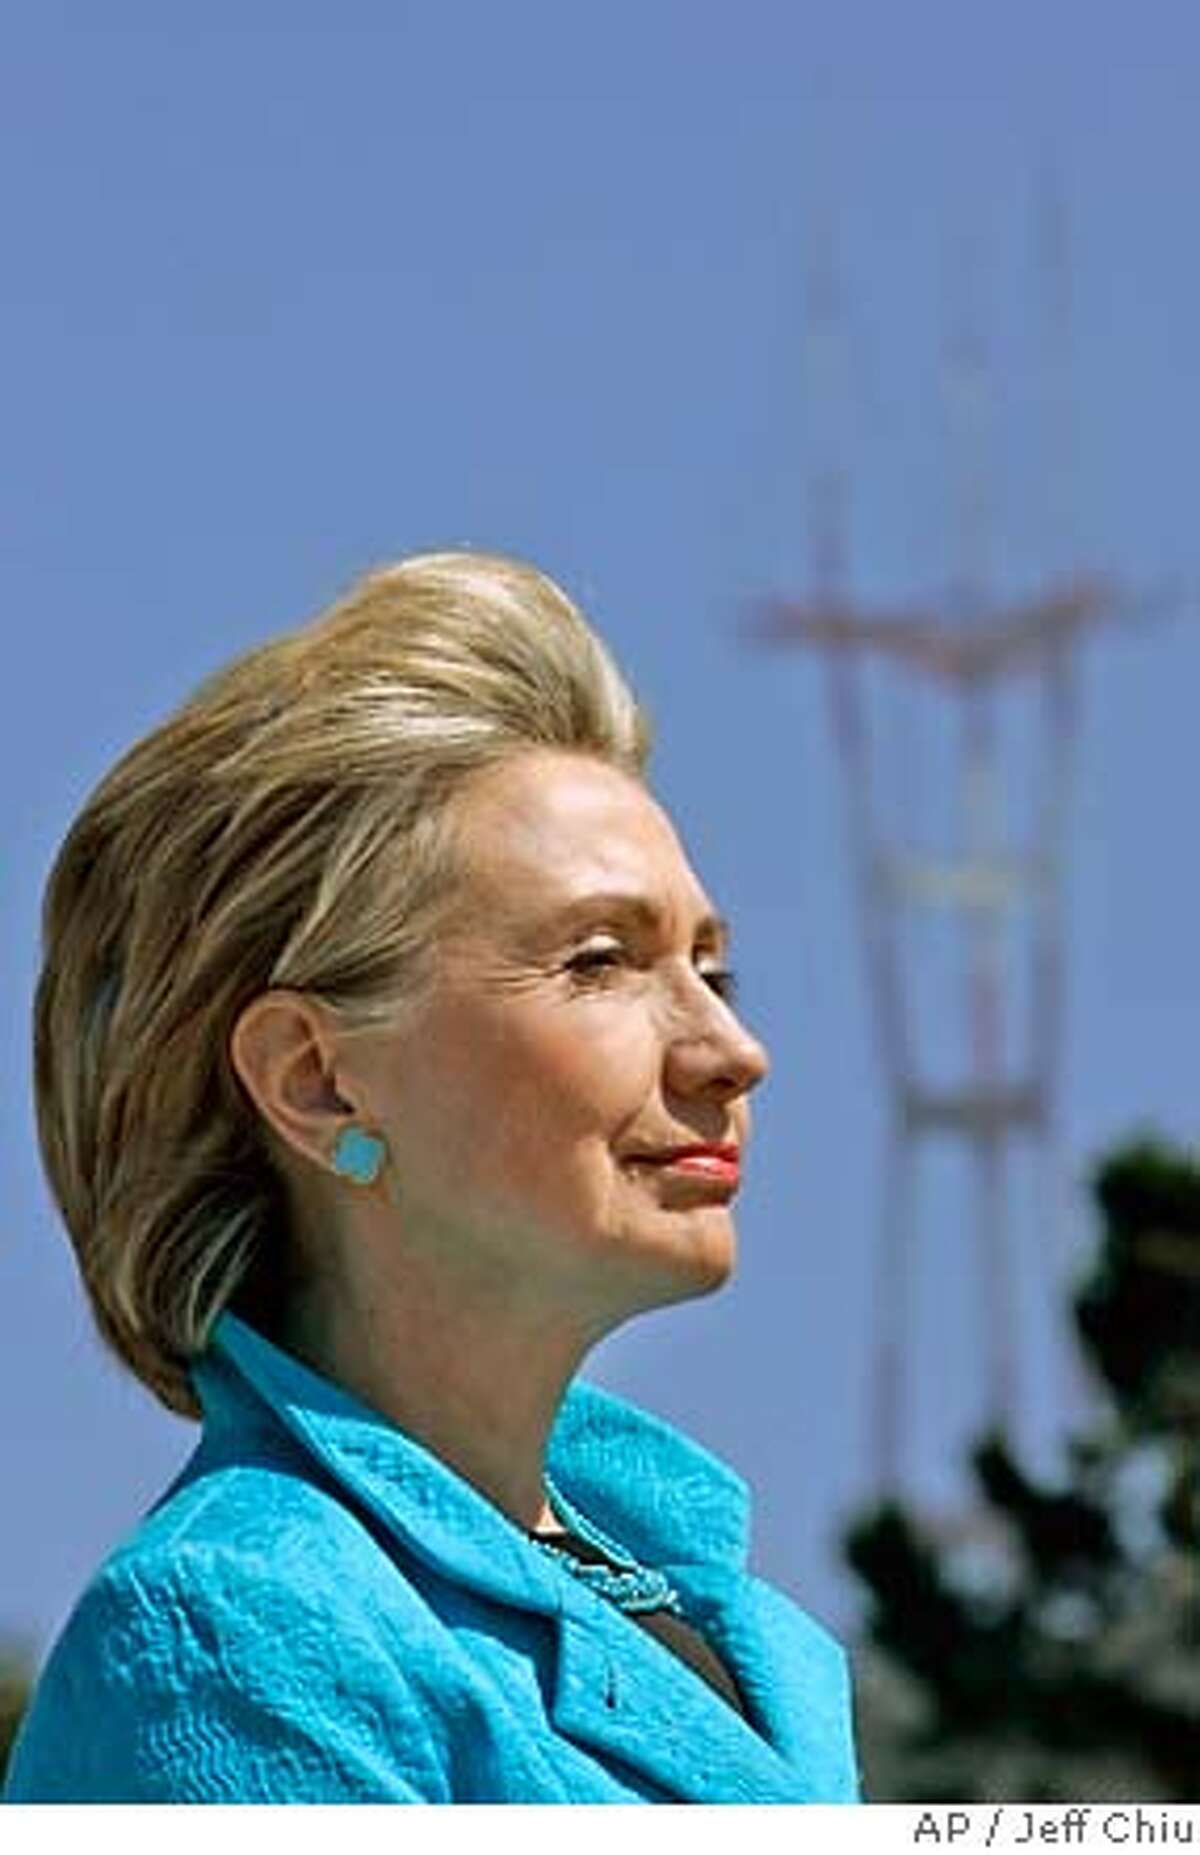 Presidential hopeful Sen. Hillary Rodham Clinton, D-N.Y., listens as San Francisco Mayor Gavin Newsom speaks at a news conference following a tour of the construction site of the California Academy of Sciences in San Francisco, Friday, Aug. 10, 2007. (AP Photo/Jeff Chiu)